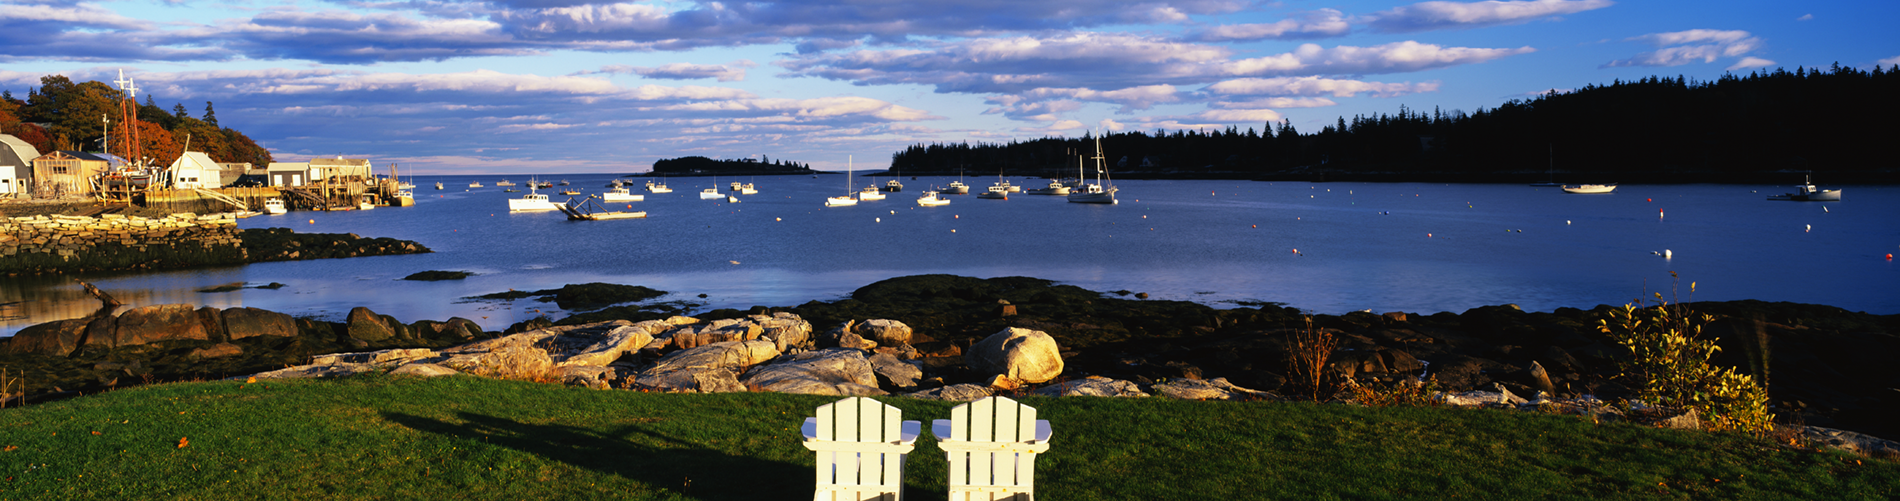 Lawn Chairs and Harbor at Lobster Village